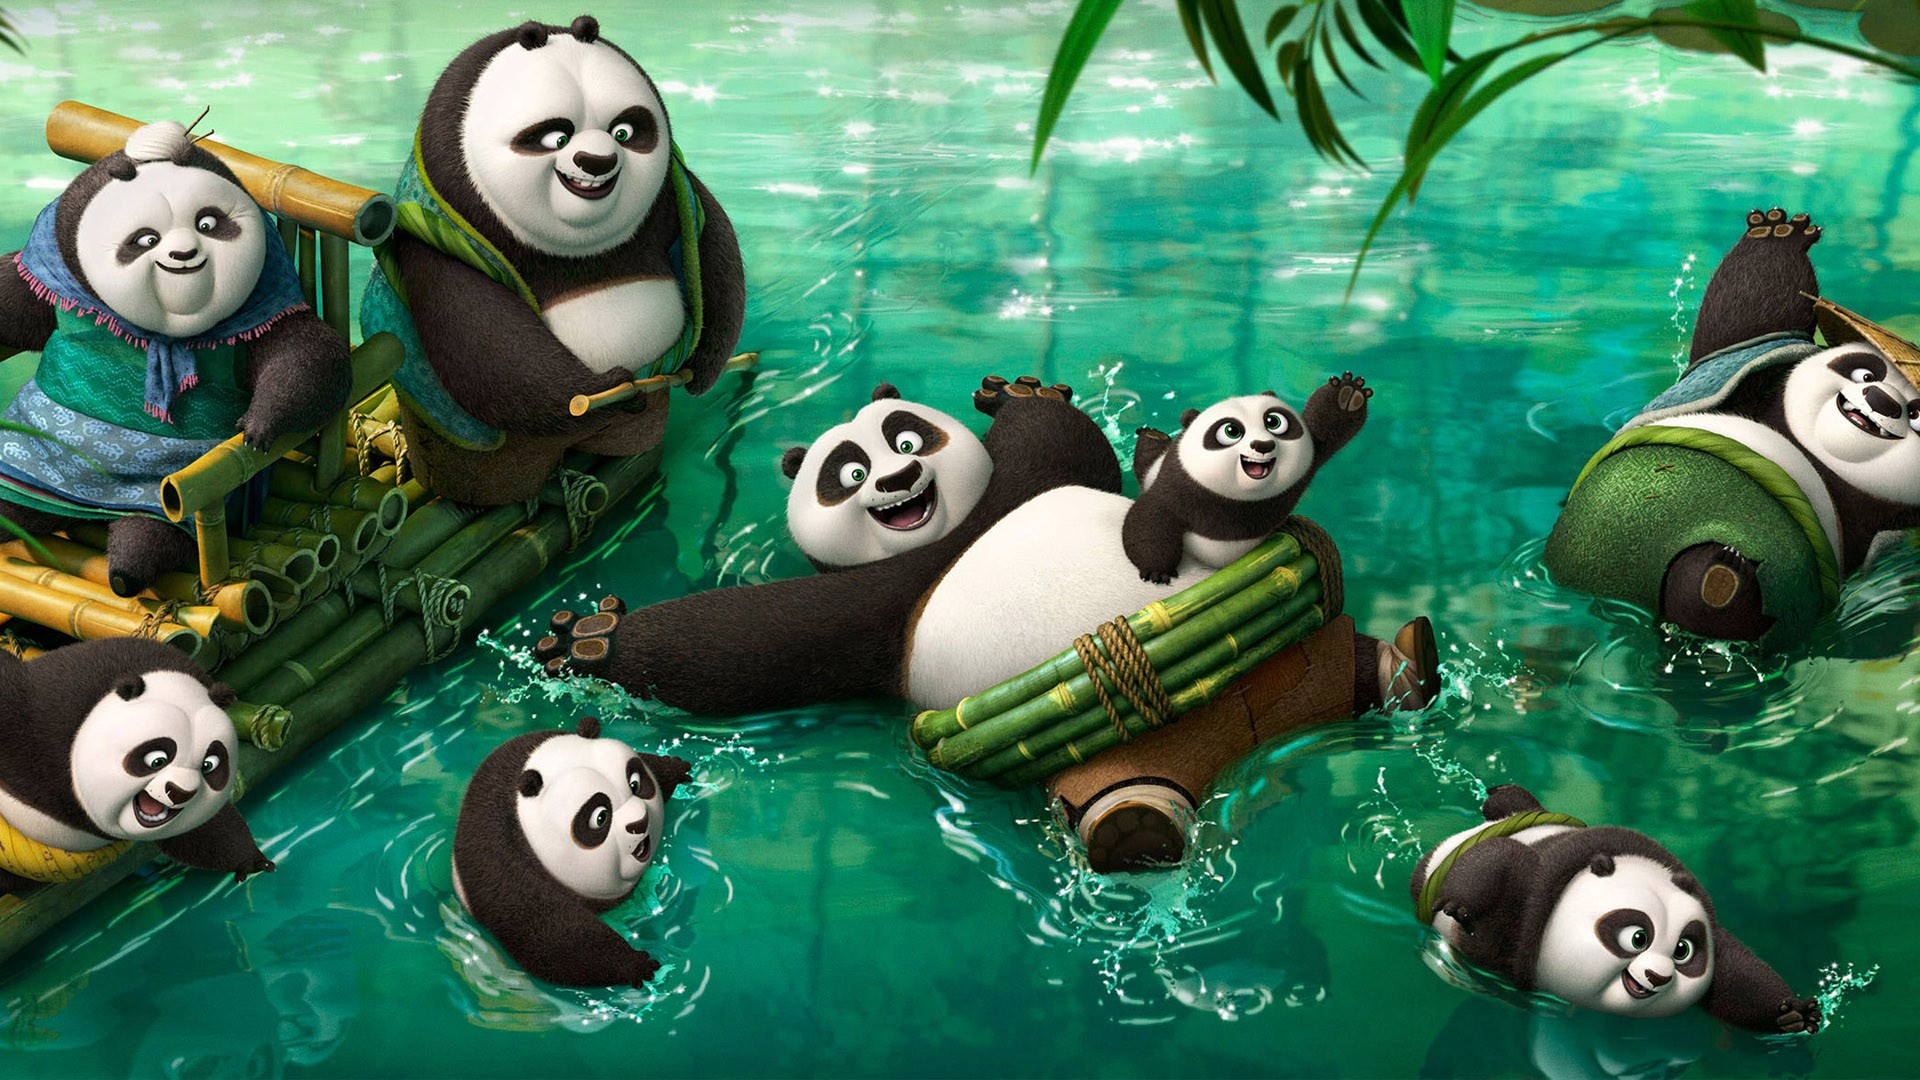 wallpaper kung fu panda 3, po family, movies #7122